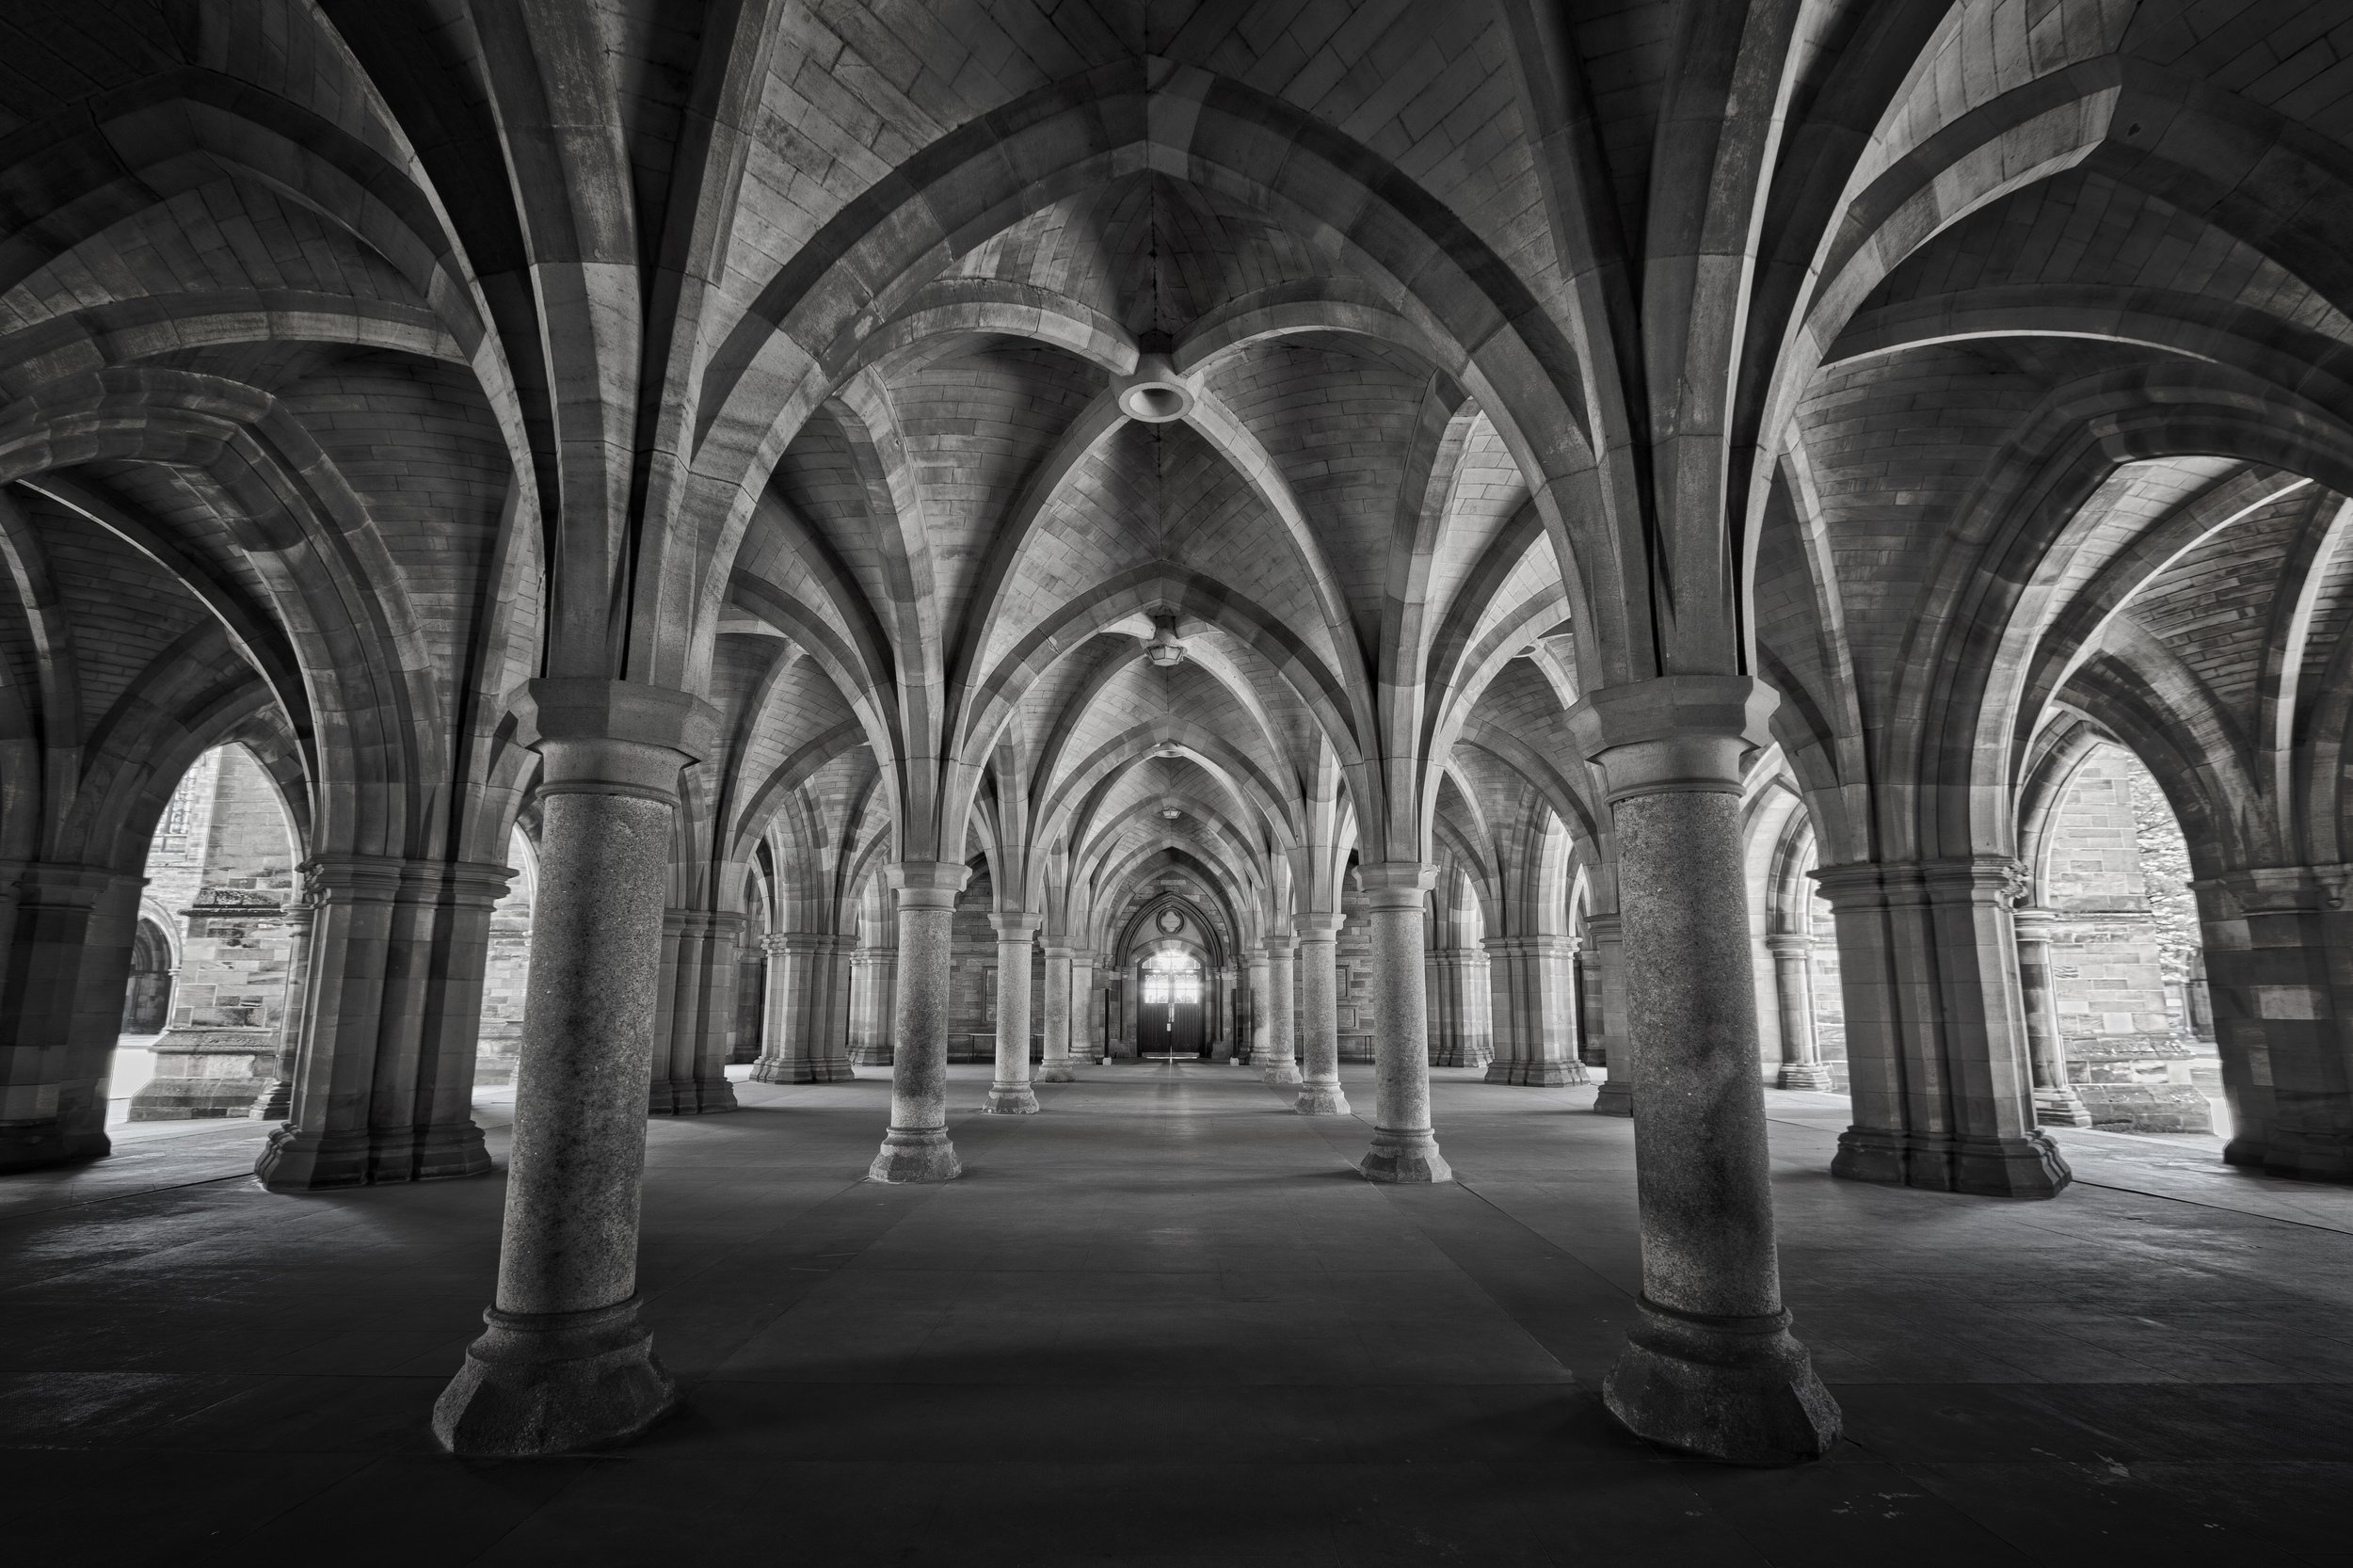 Glasgow University Cloister (used as a location for Outlaw King)